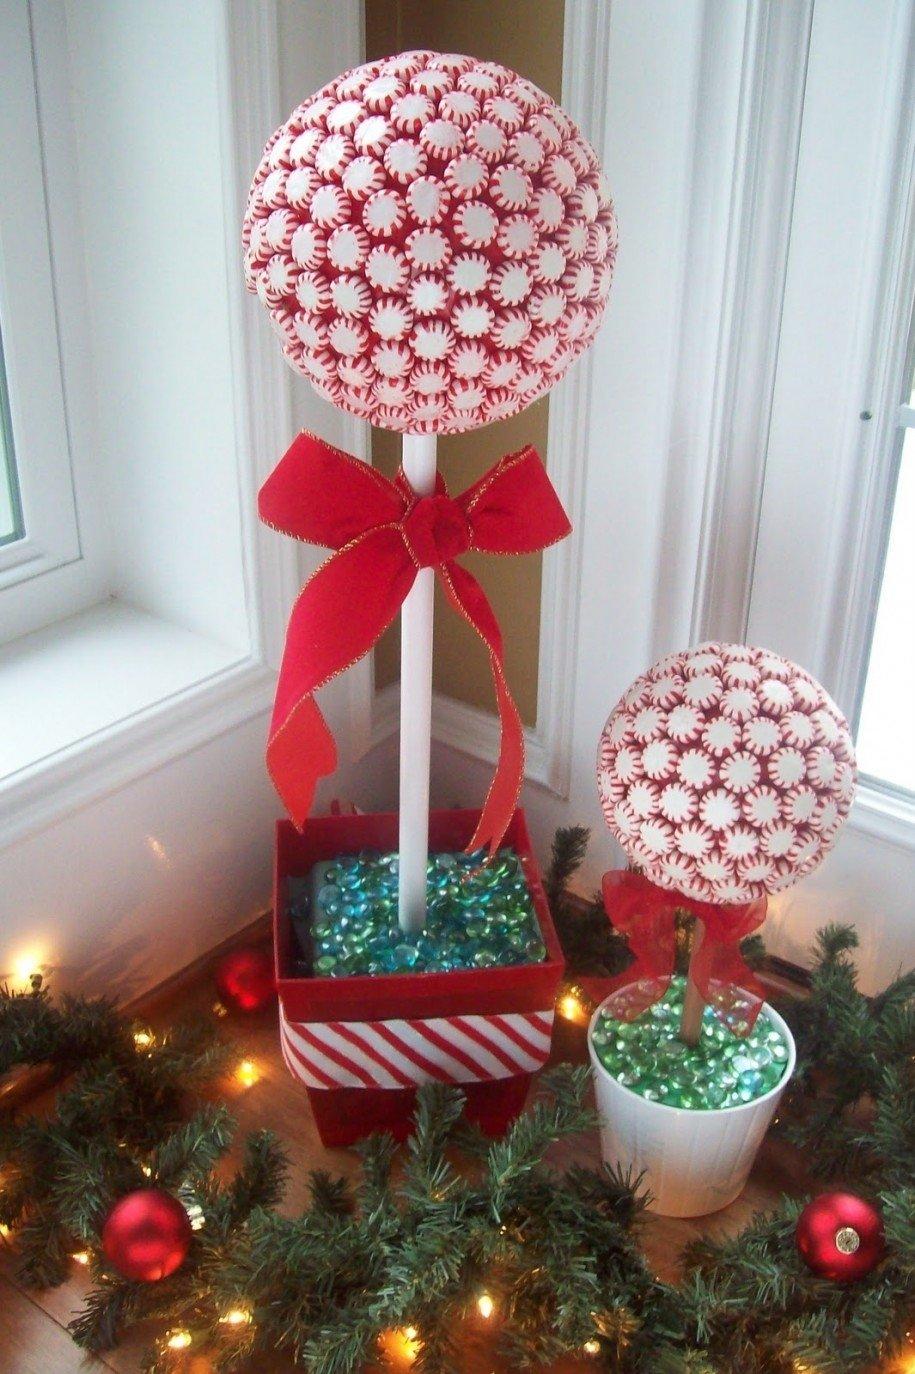 10 Cute Craft Ideas For Christmas Gifts homemade craft christmas gifts phpearth 2021